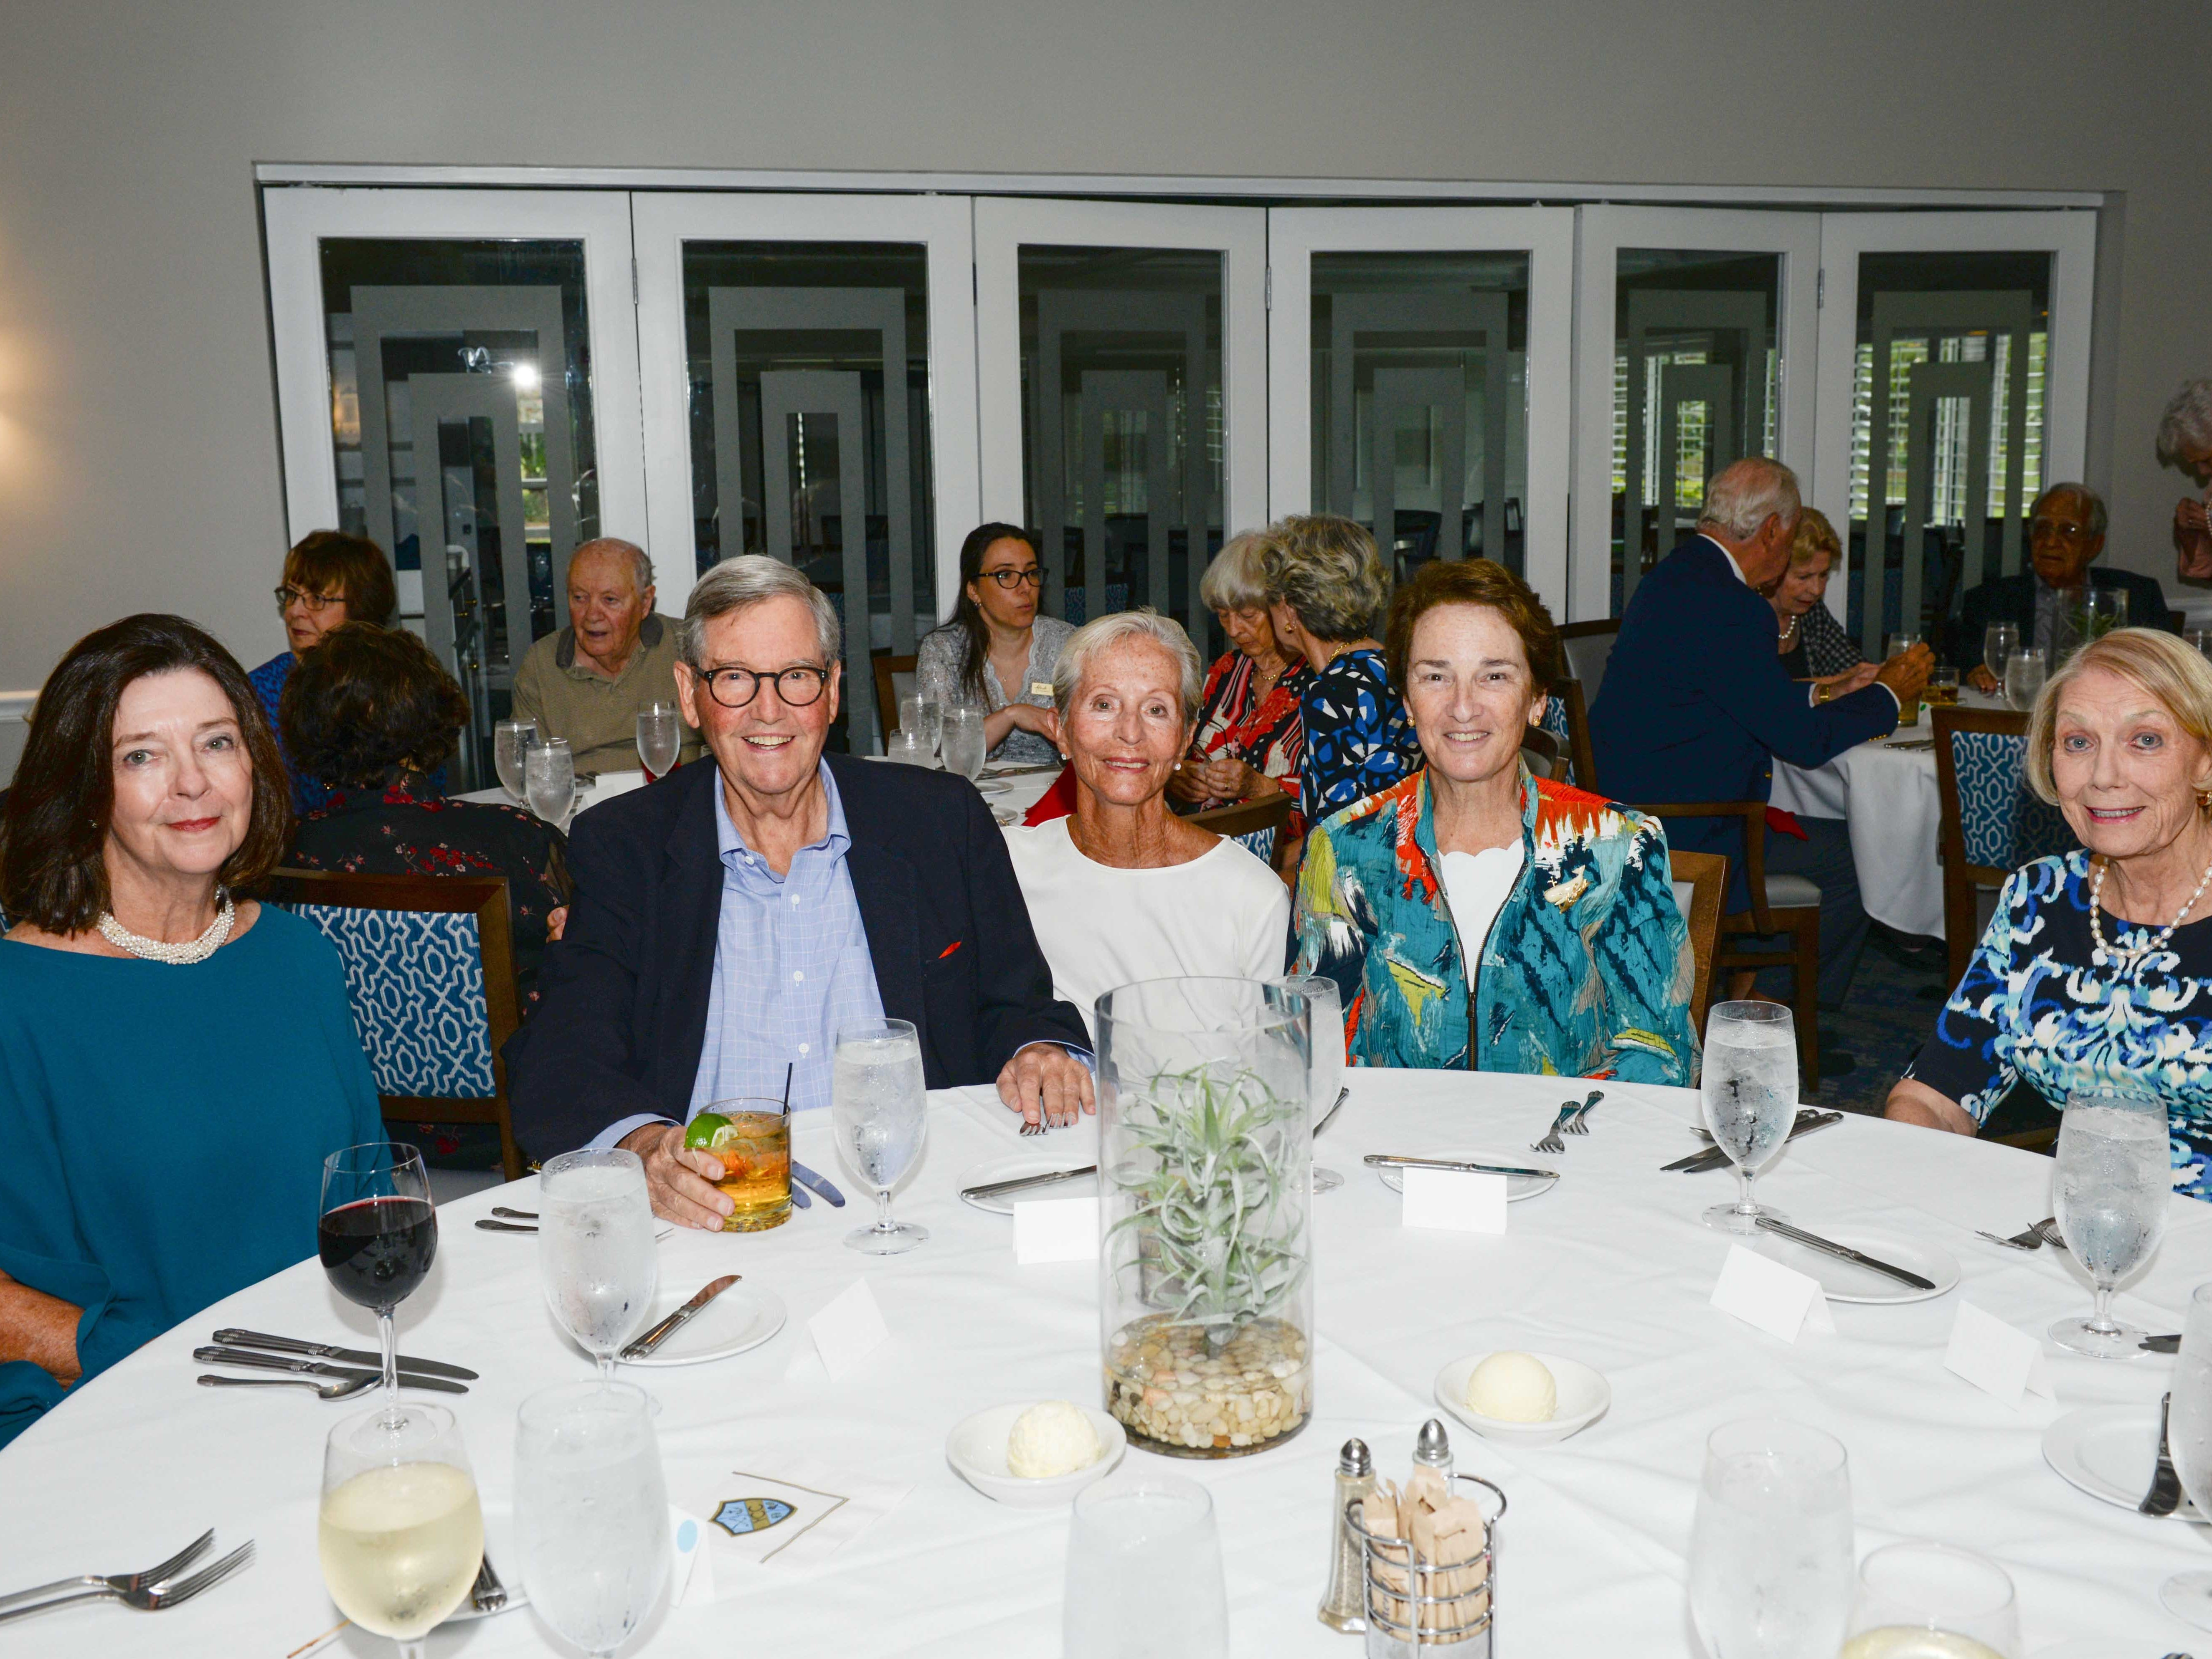 Martha Pertuz, left, John Lathrop, Rita McElwee, Sheila Lathrop and Barbara Peard attend the Stuart Friends of the Atlantic Classical Orchestra's Meet the Artist Dinner at the Stuart Yacht & Country Club.